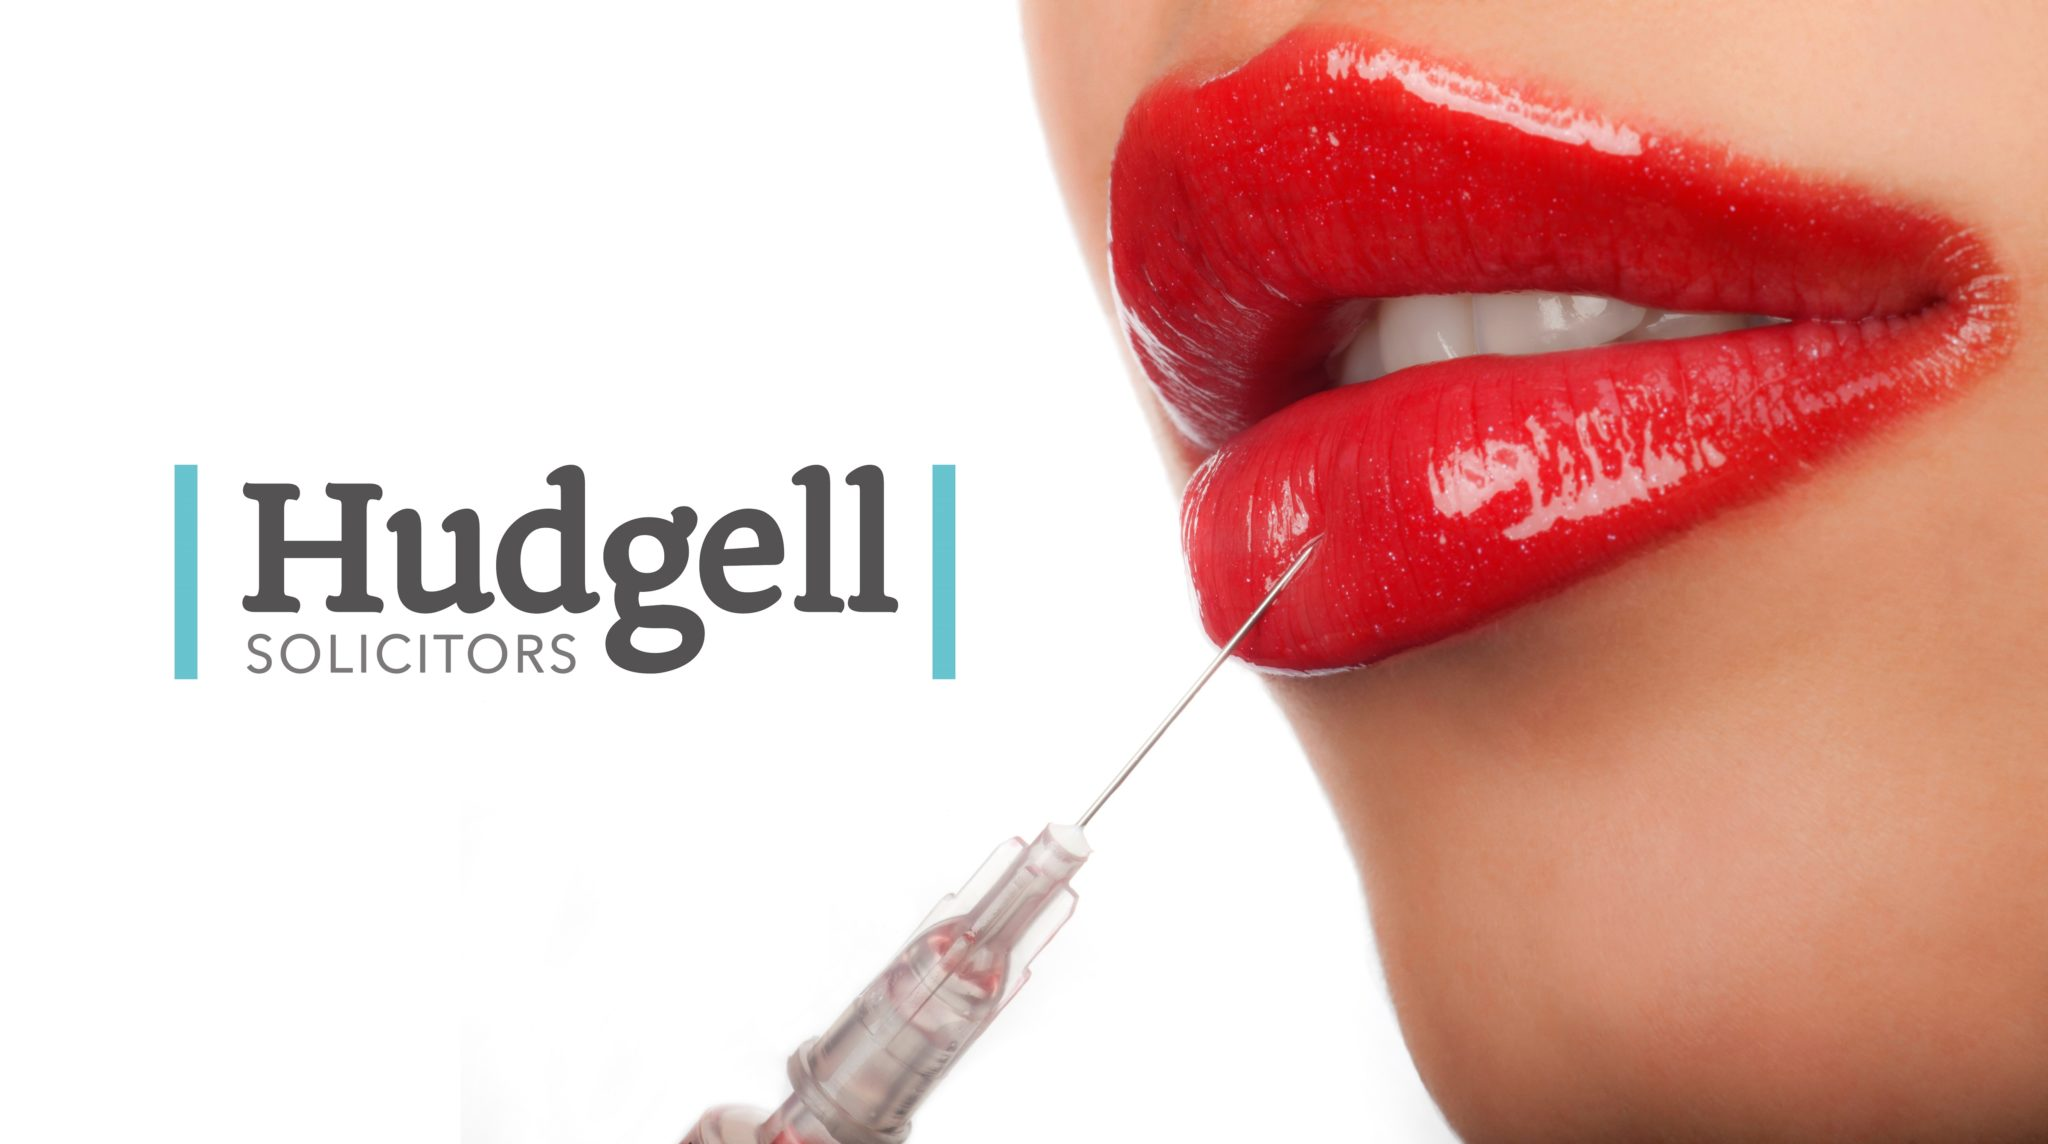 Hudgell Solicitors support news of new cosmetic surgery marketing rules